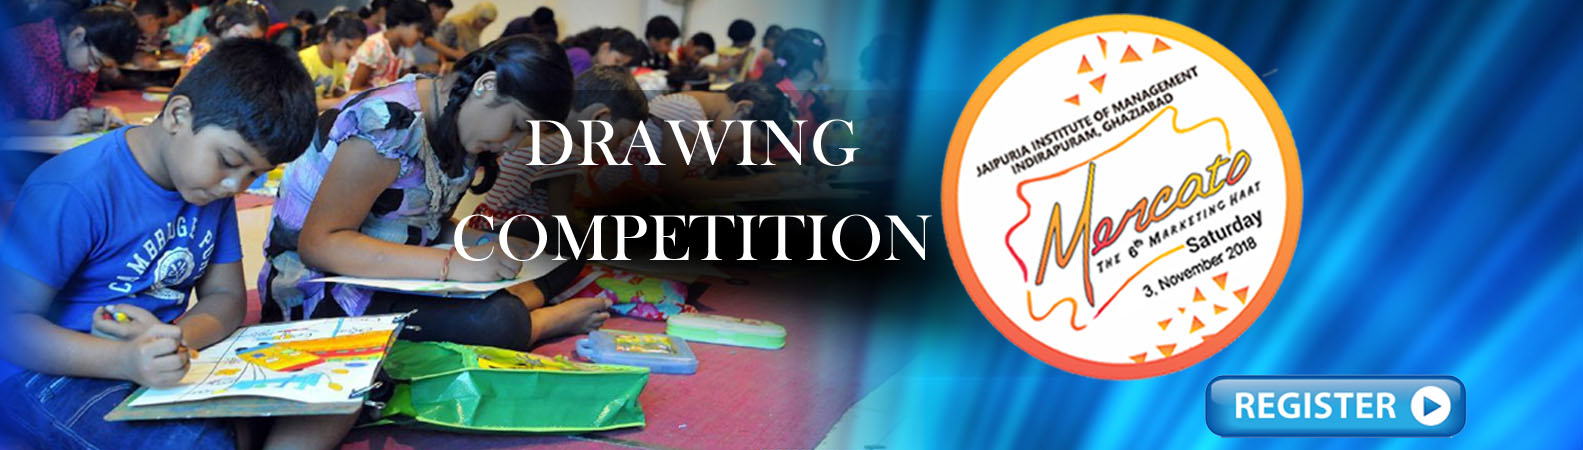 Drawing-comp